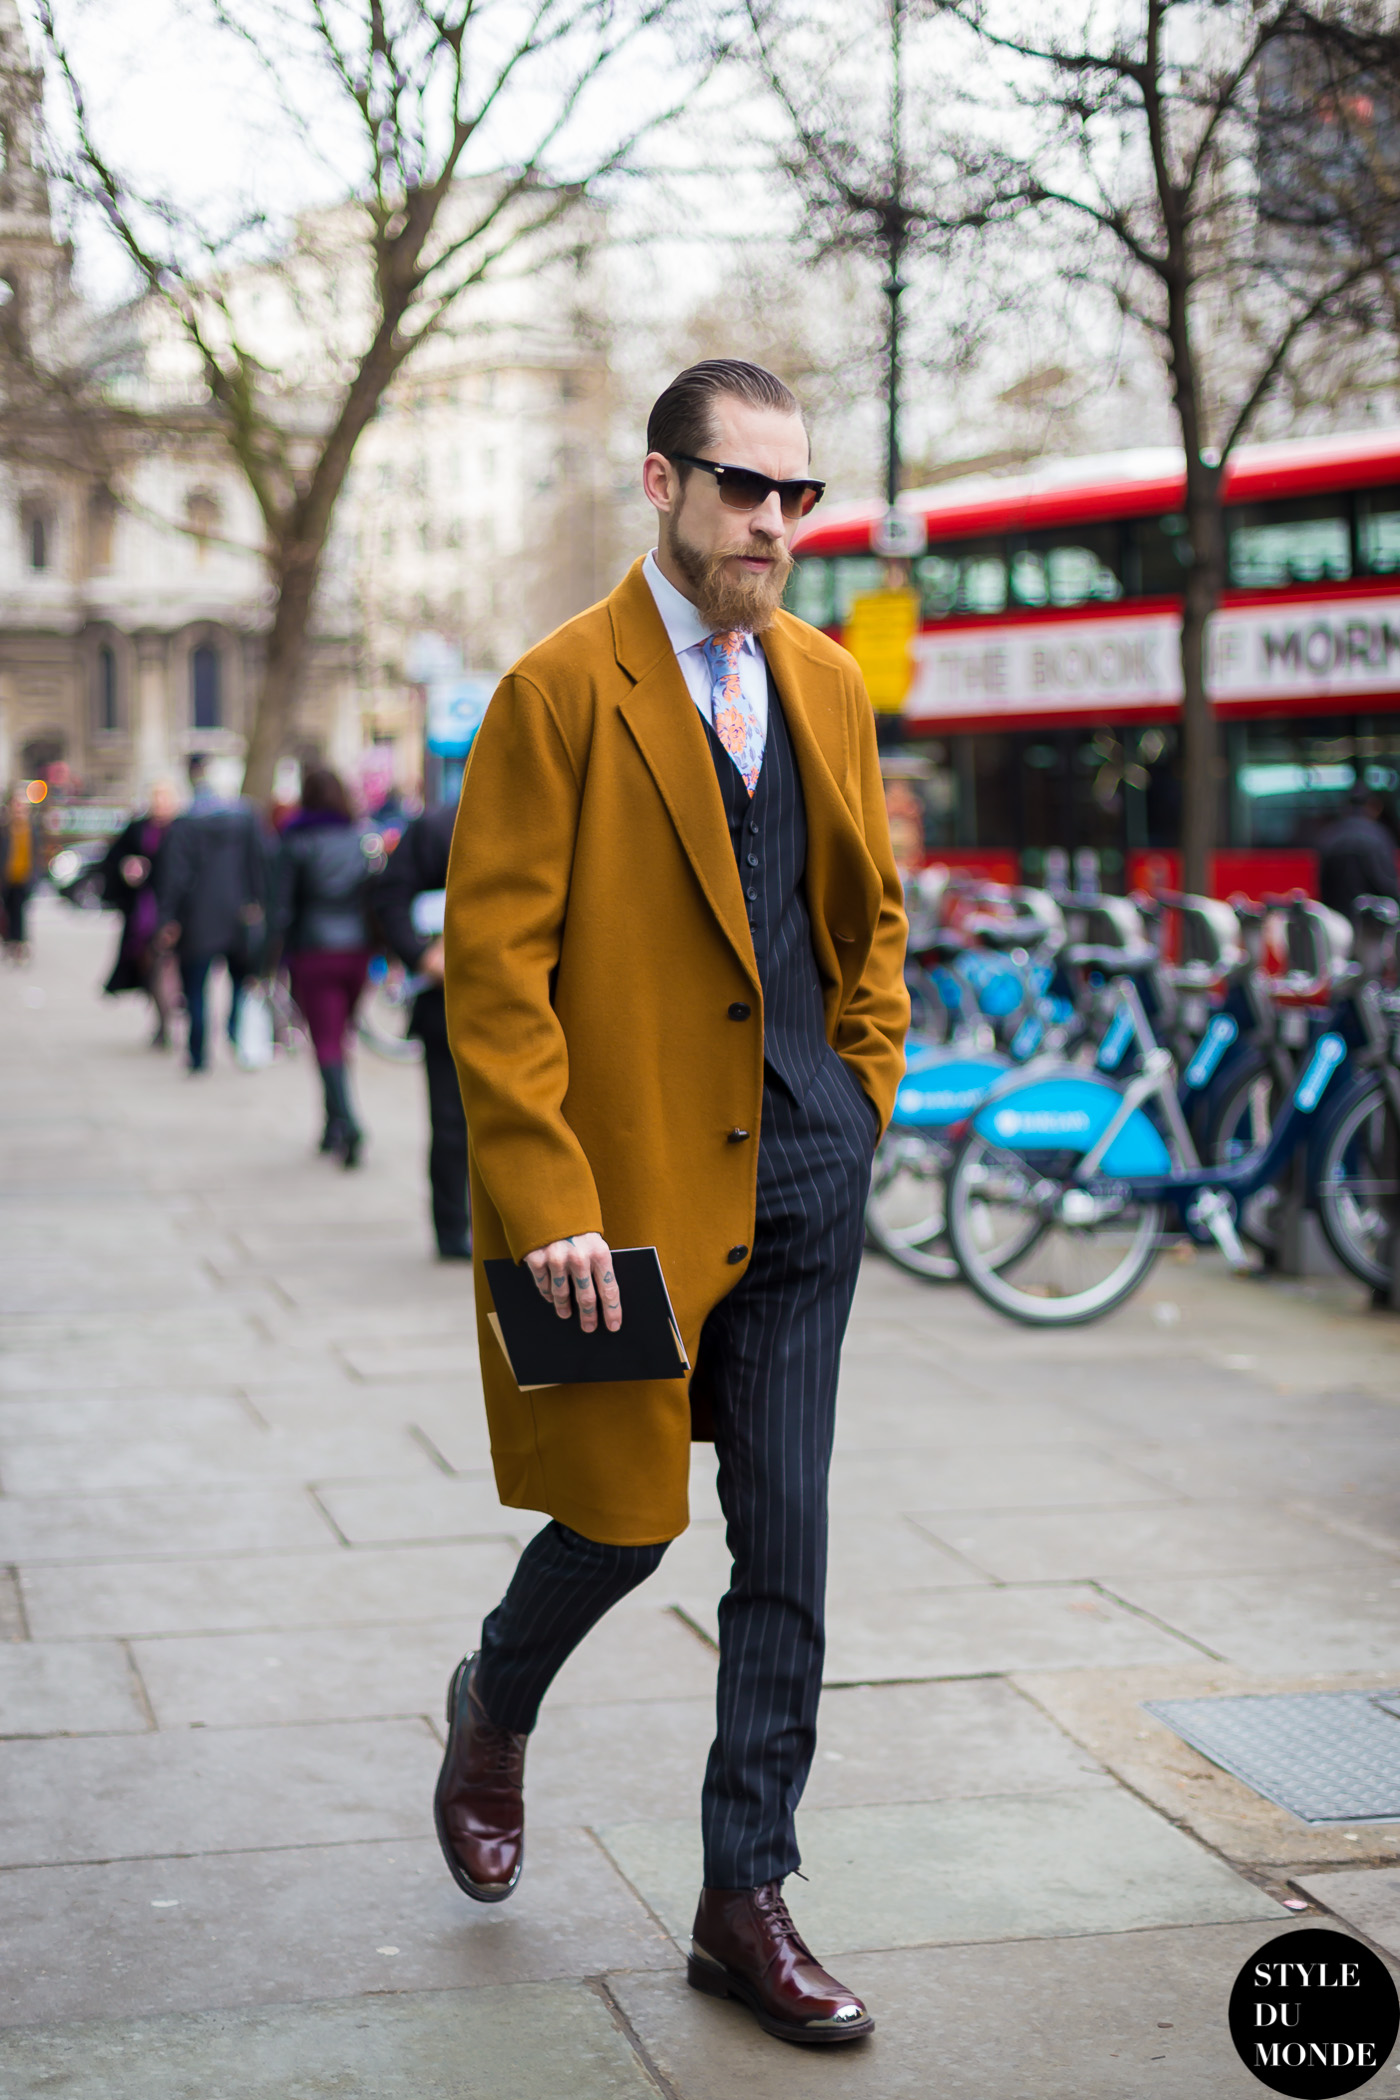 Justin O'Shea Street Style Street Fashion by STYLEDUMONDE Street Style Fashion Blog